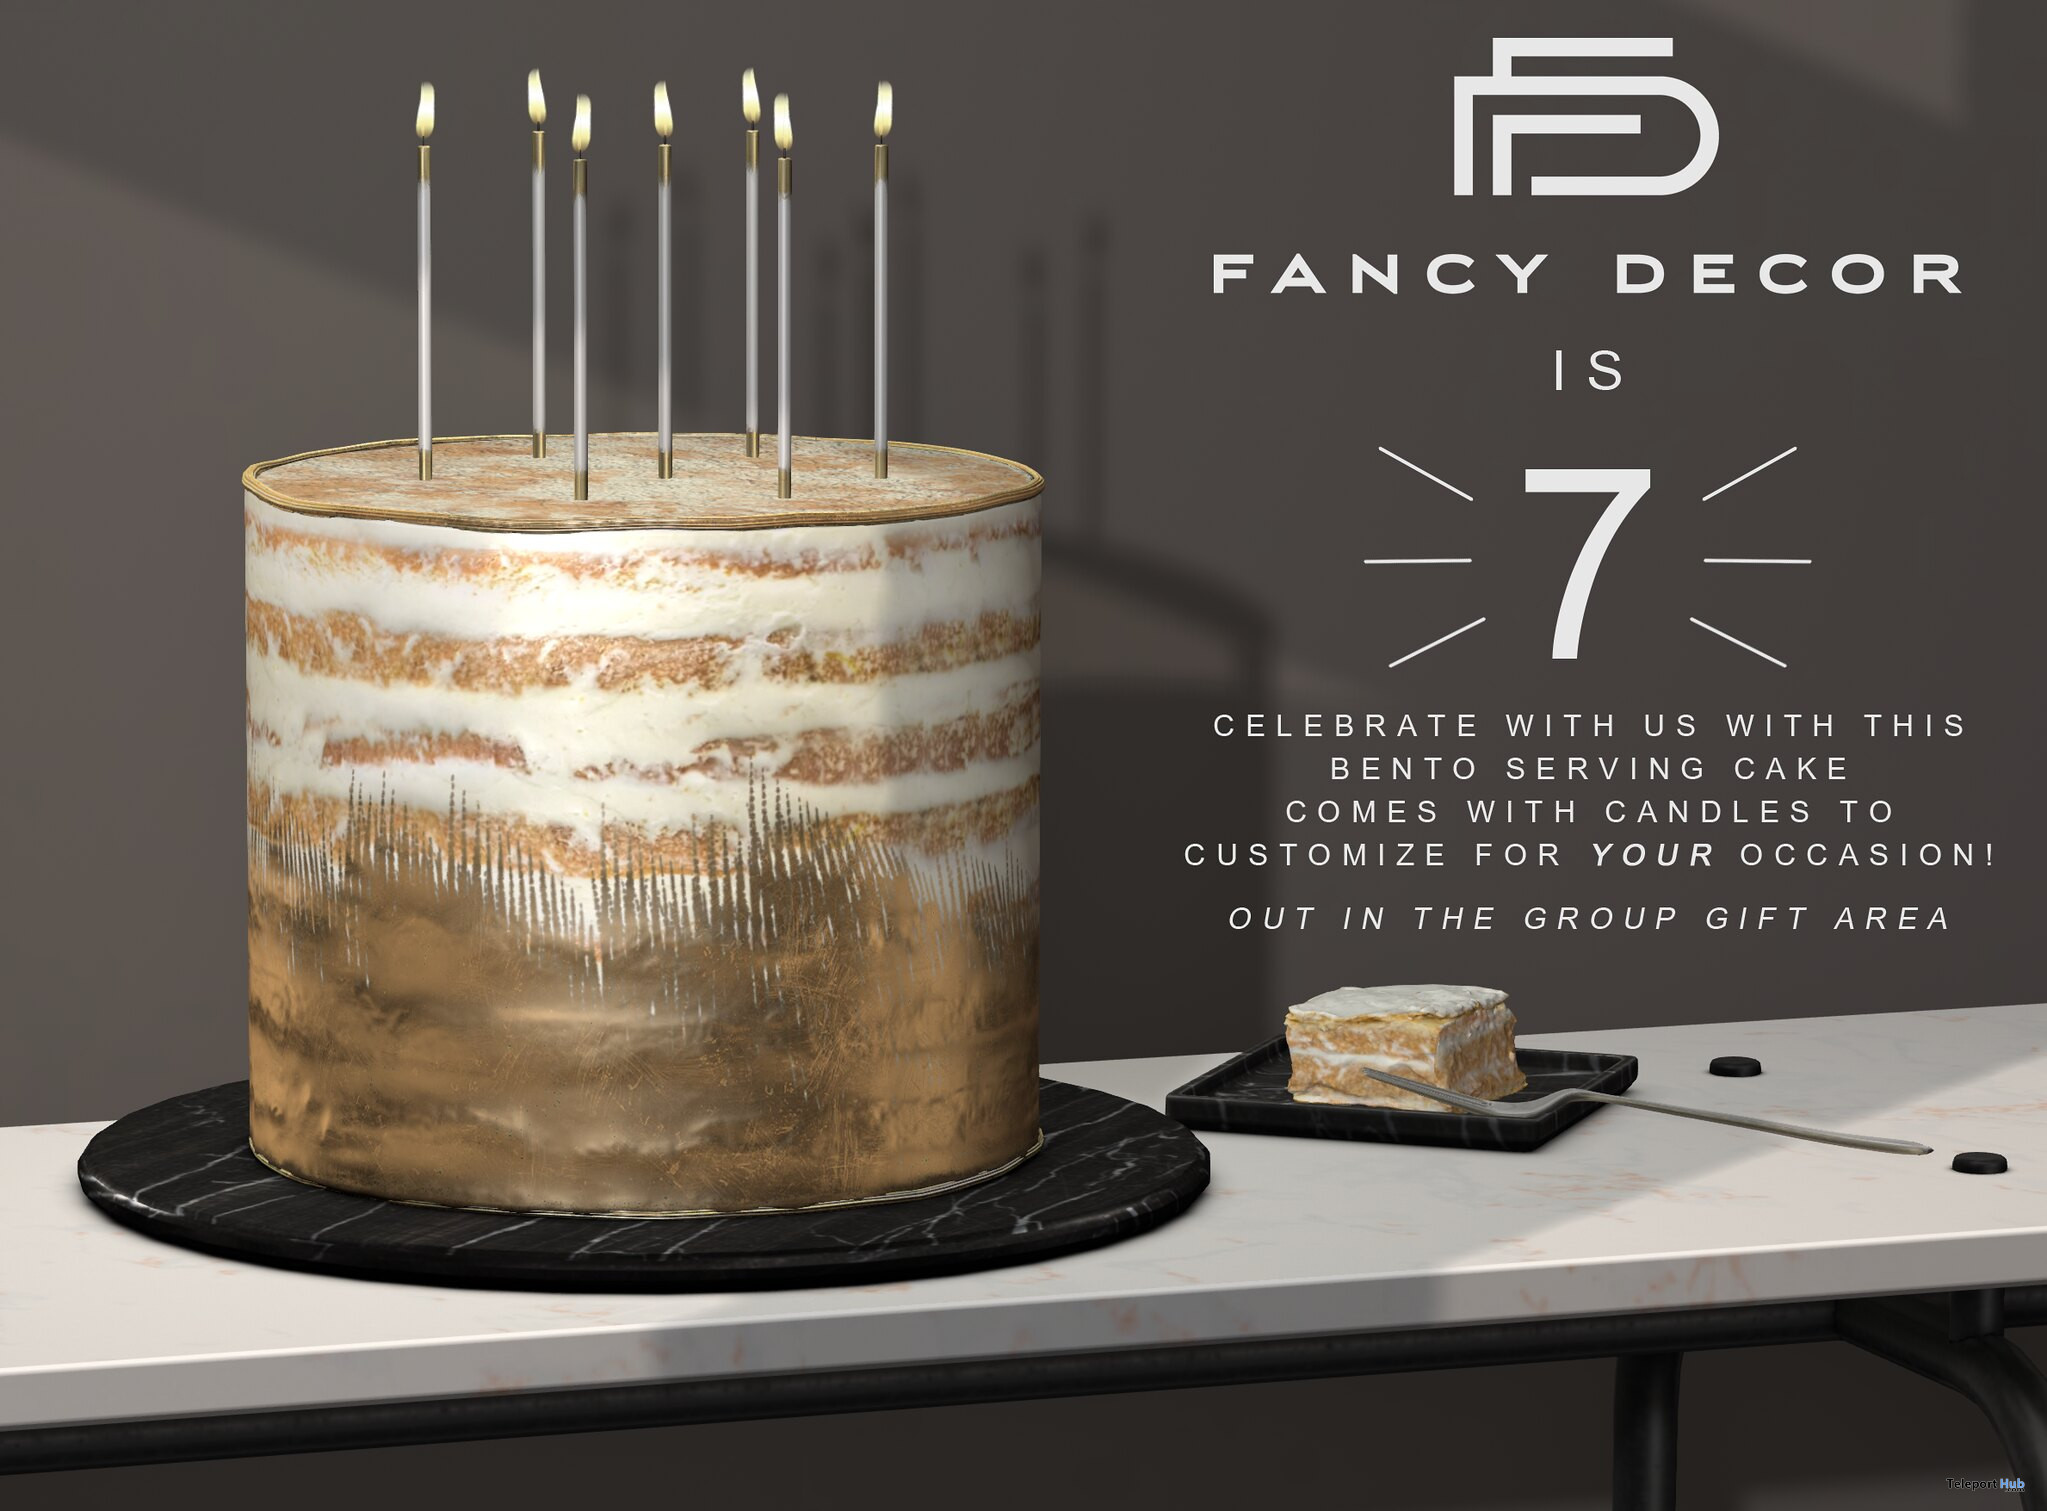 7th Anniversary Cake July 2021 Group Gift by Fancy Decor - Teleport Hub - teleporthub.com